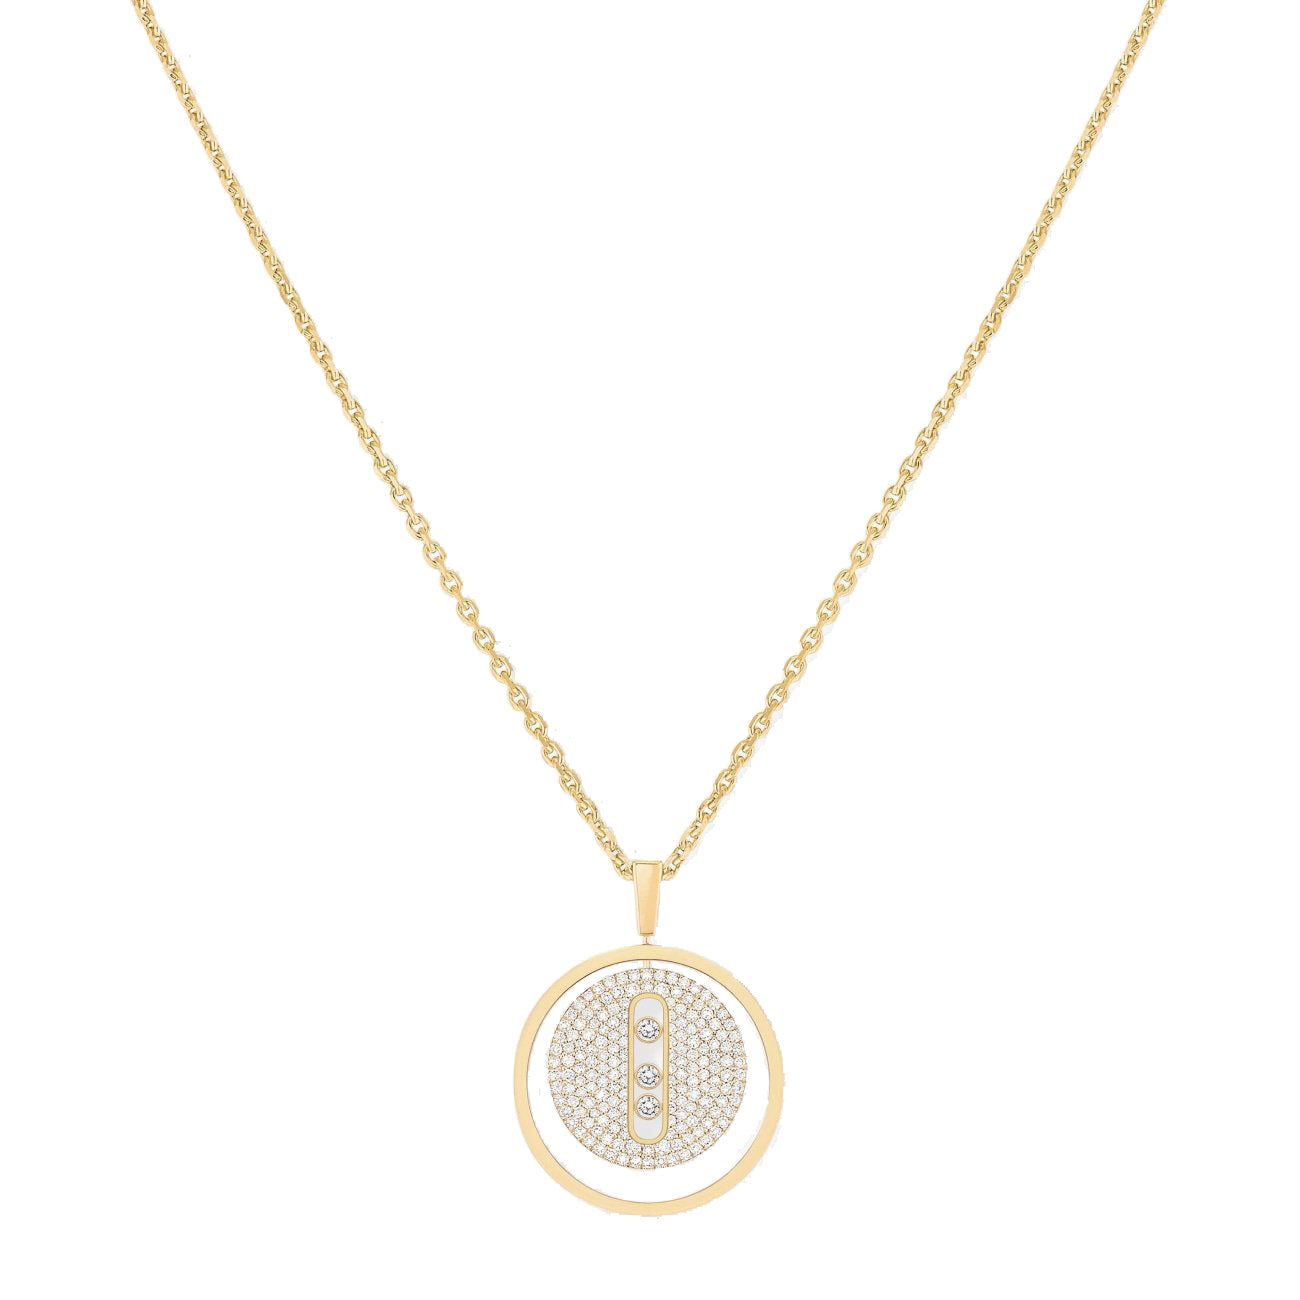 Messika Jewelry - NECKLACE DIAMOND YELLOW GOLD LUCKY MOVE MM PAVÉ | Manfredi Jewels